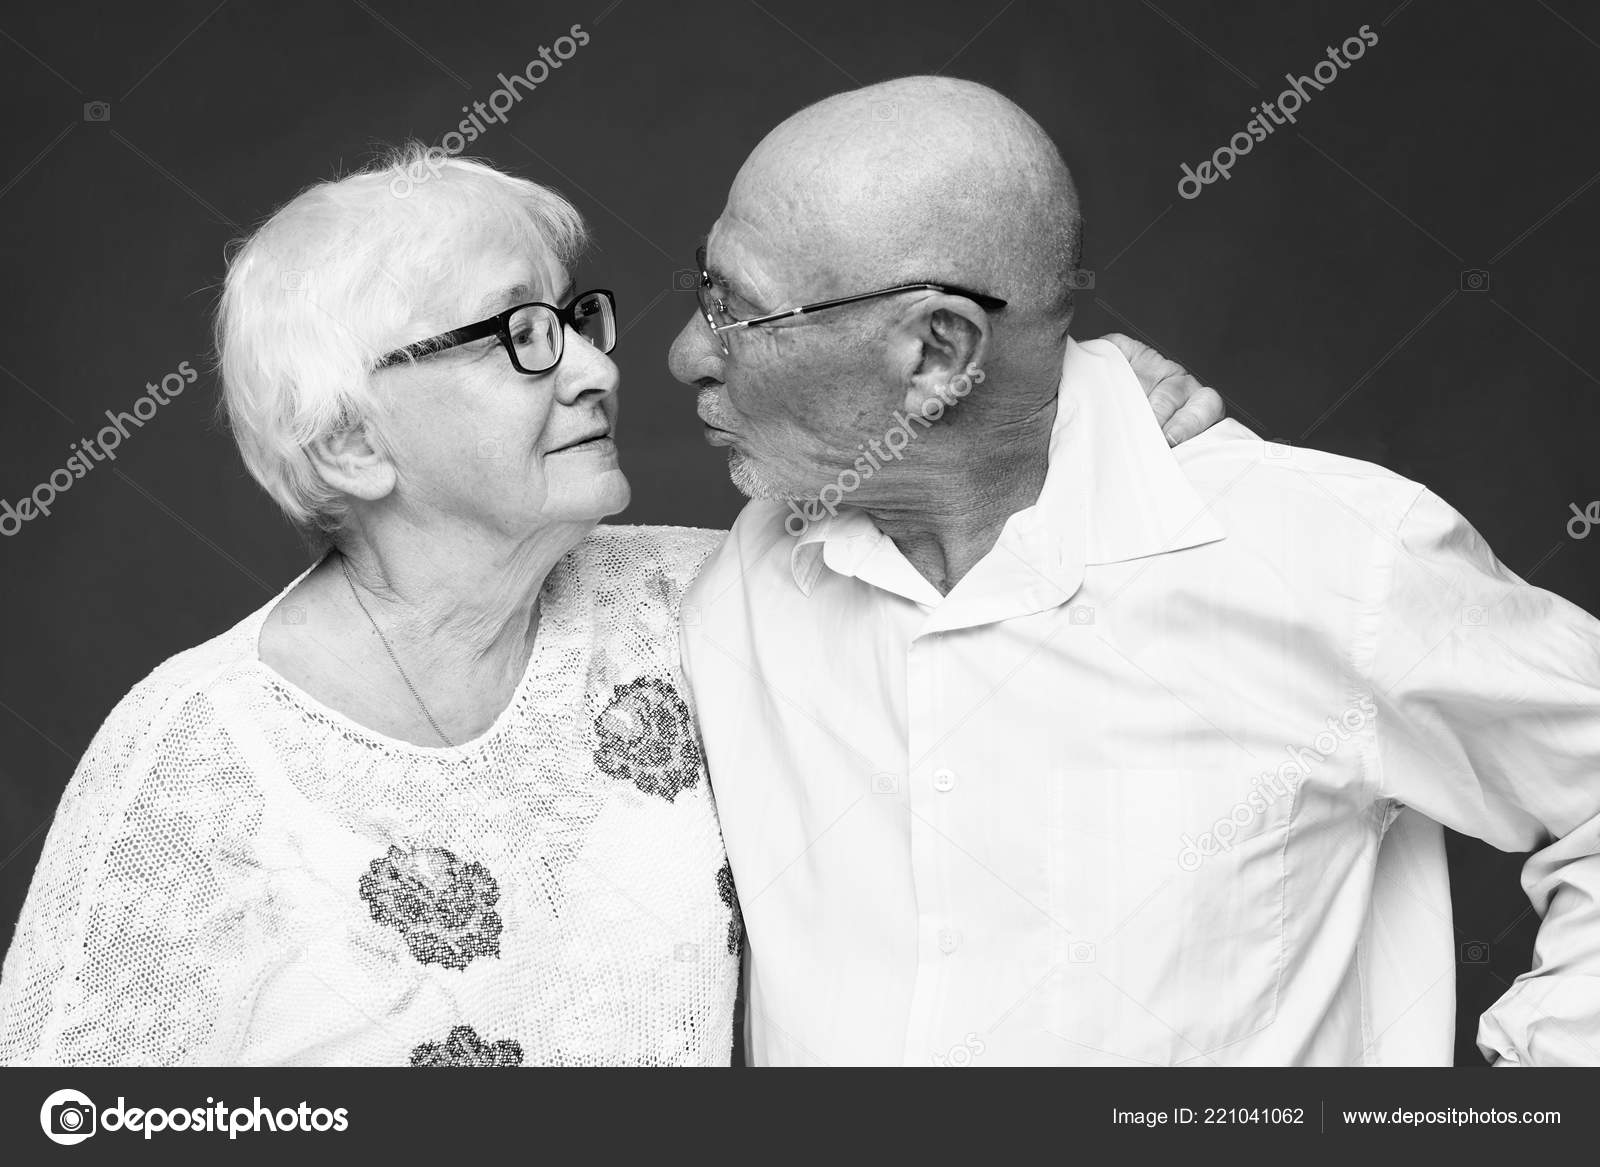 Relationship old age people concept black white portrait senior couple stock photo